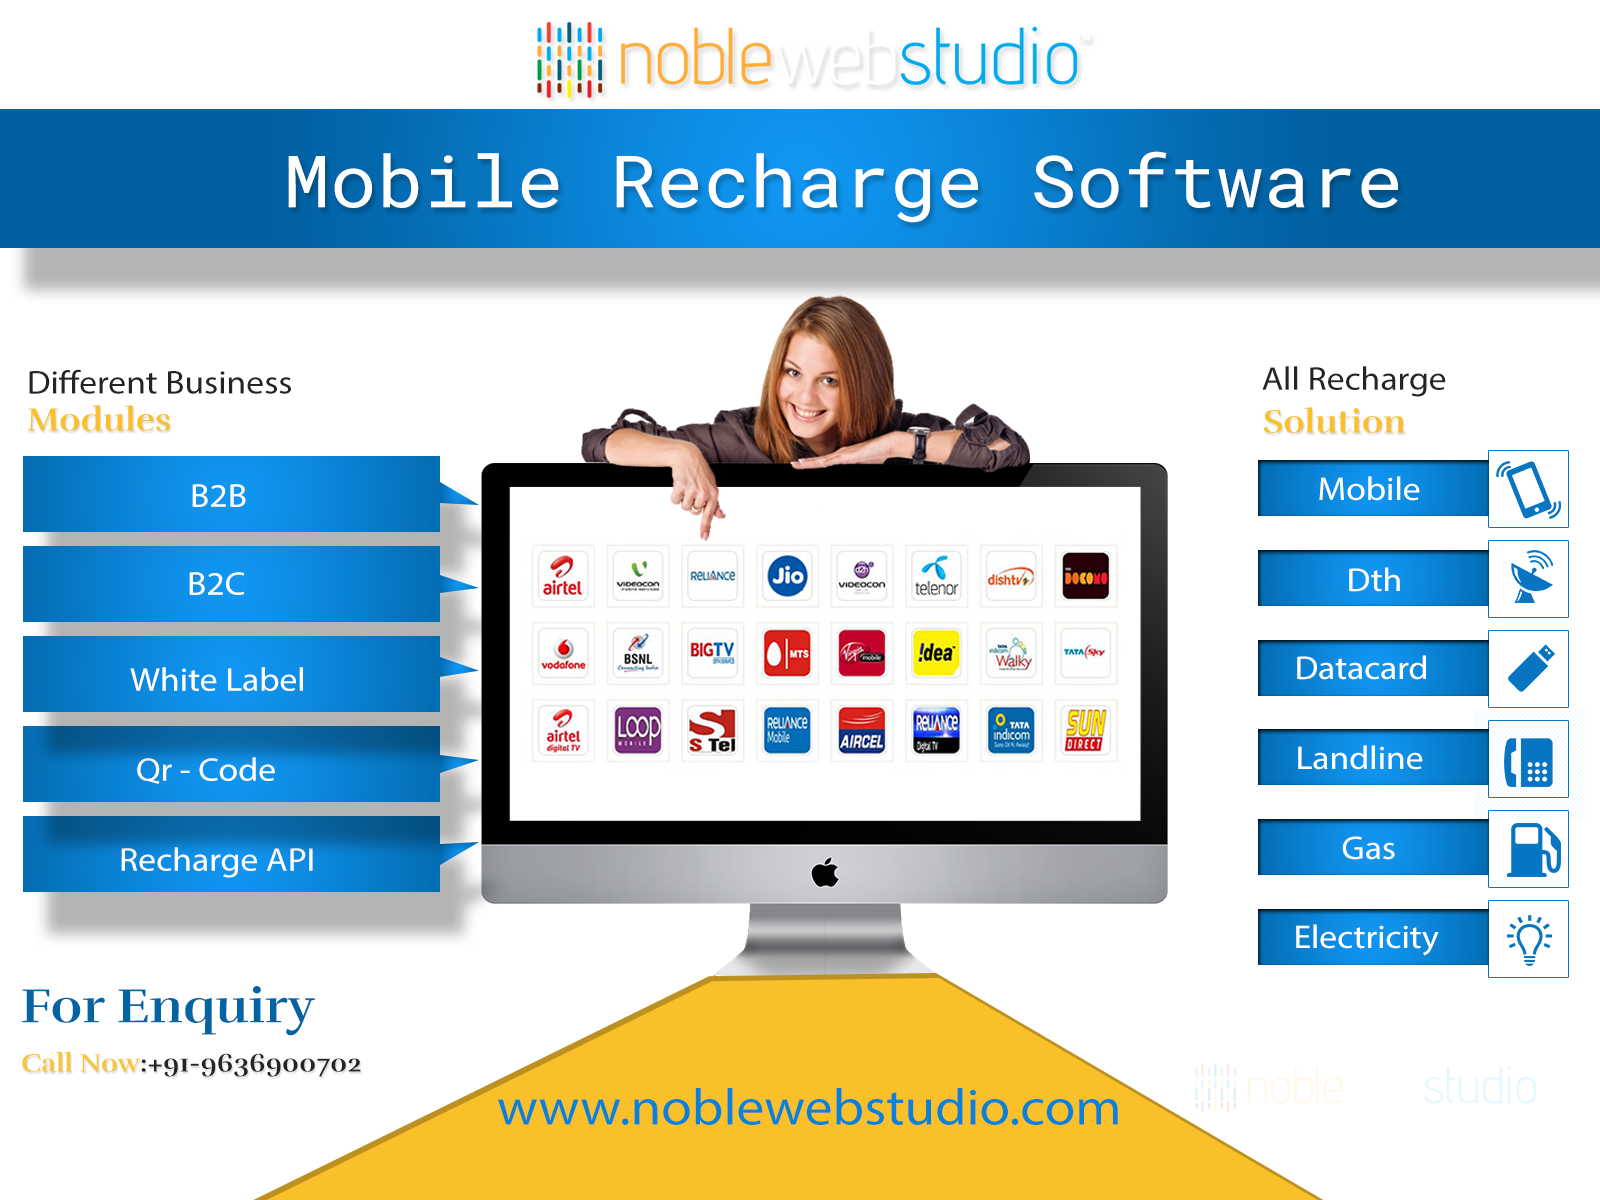 Mobile Recharge Software for B2B/B2C and White Label resellers!